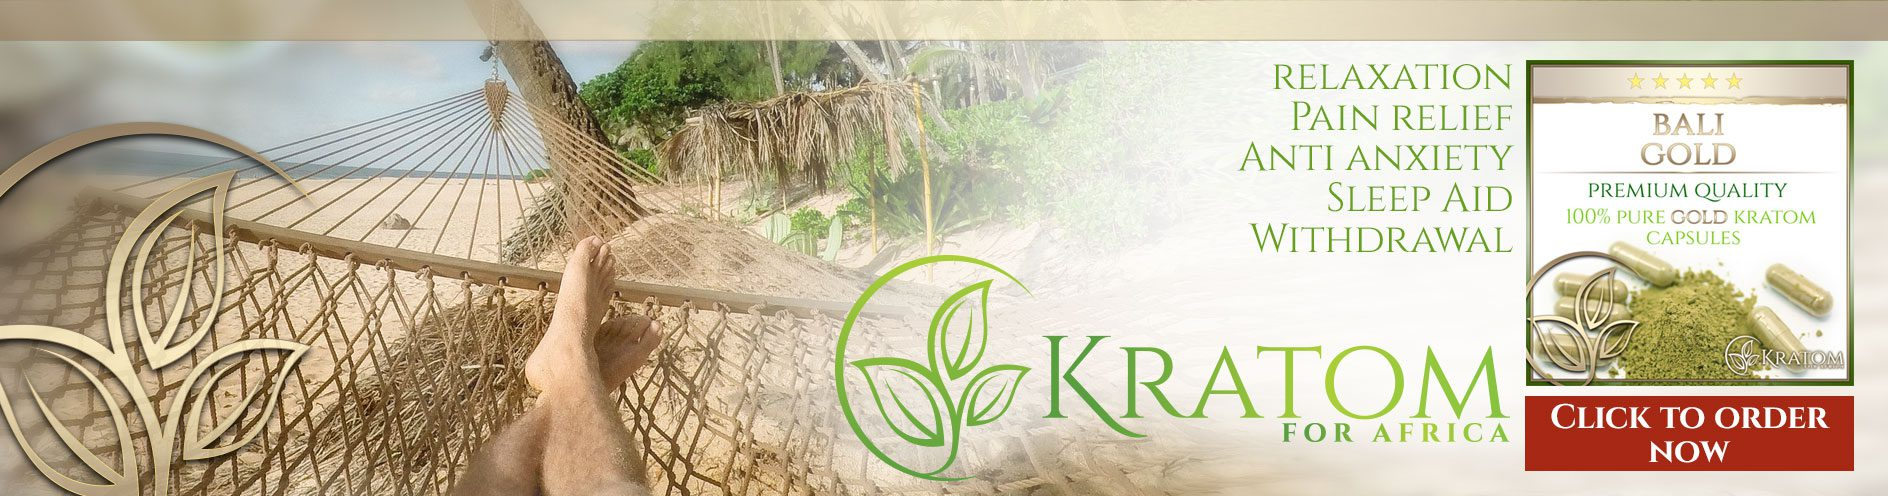 Welcome To The Future Of Pain Relief - KRATOM For South Africa